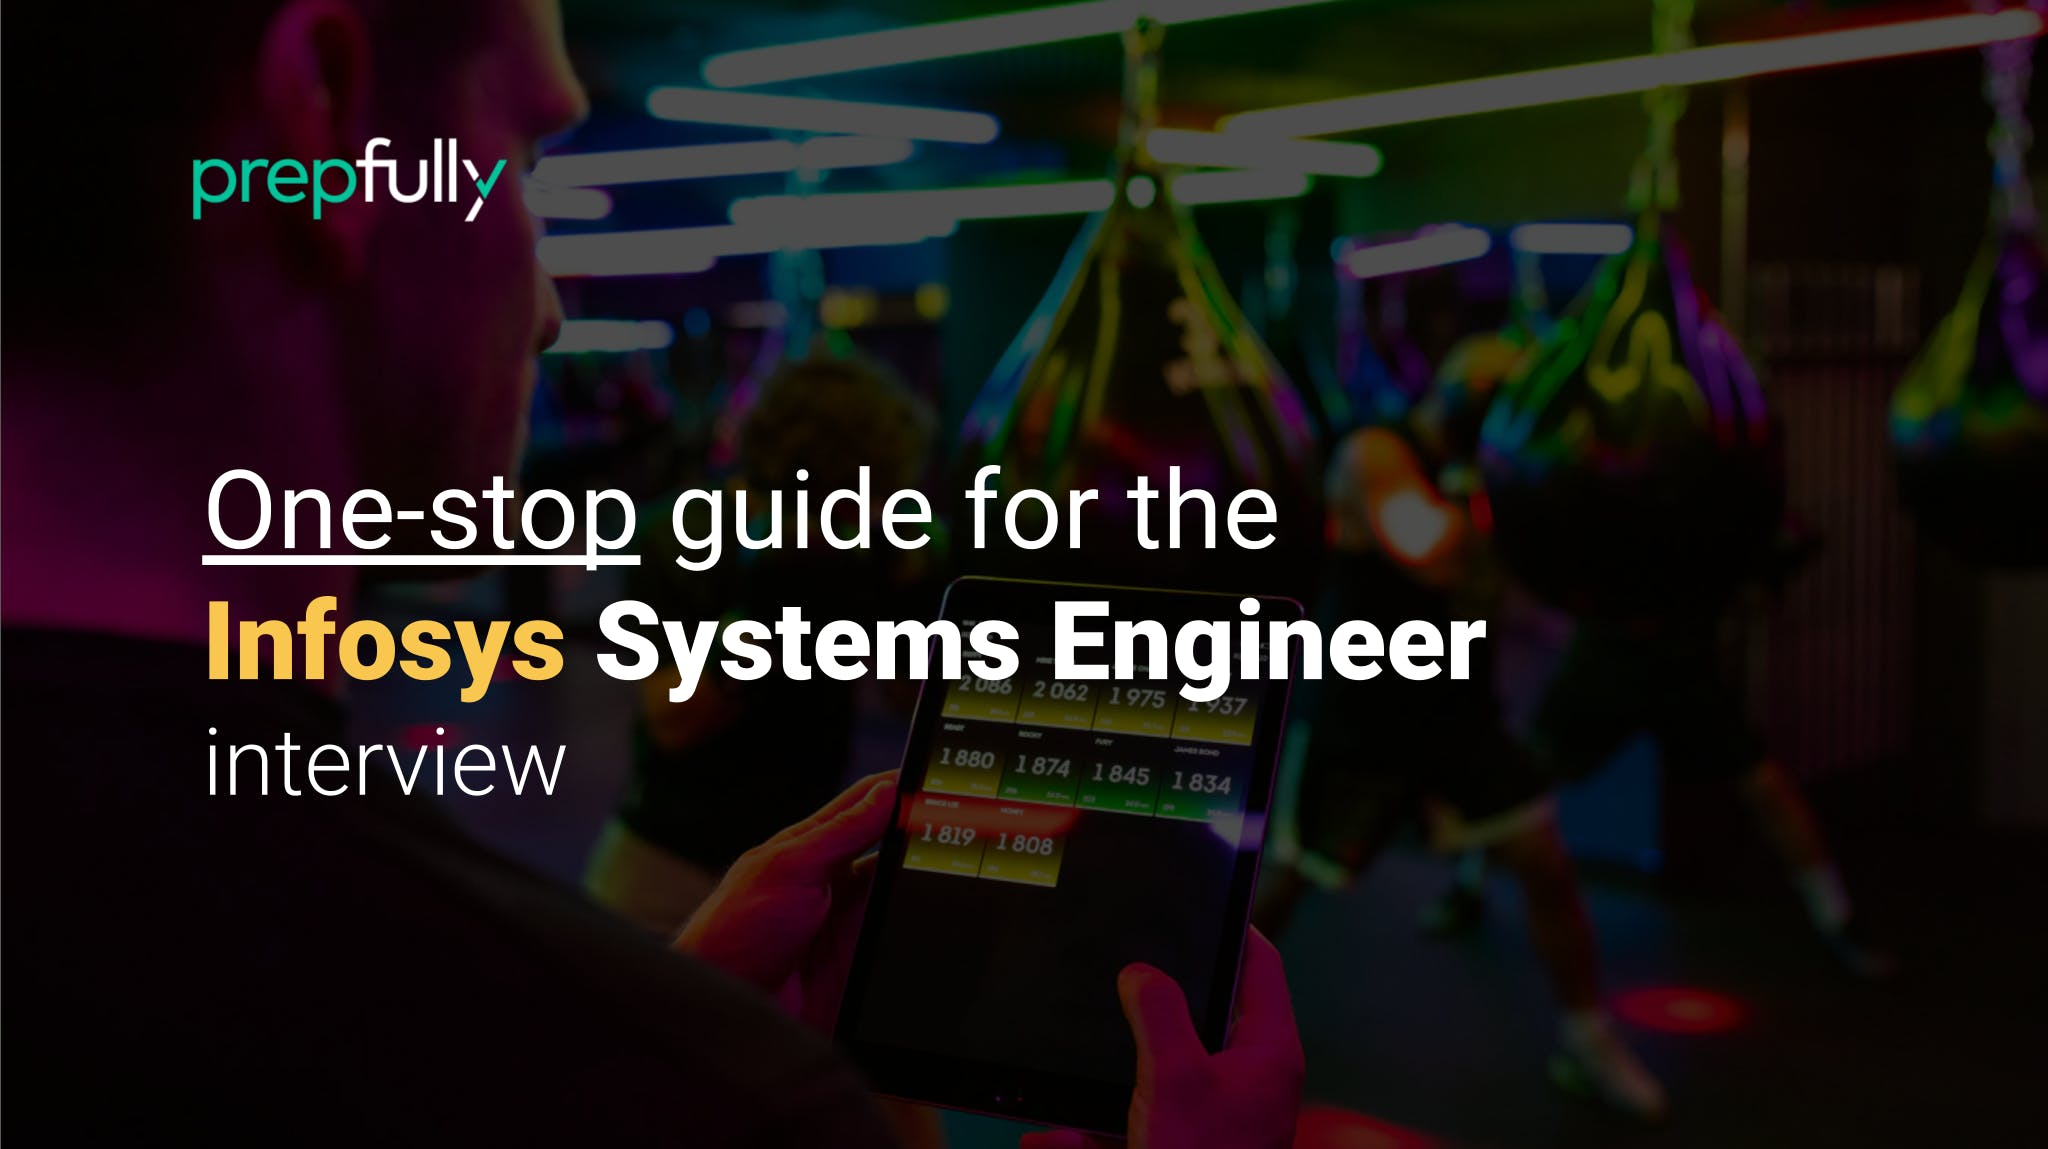 Interview guide for Infosys Systems Engineer